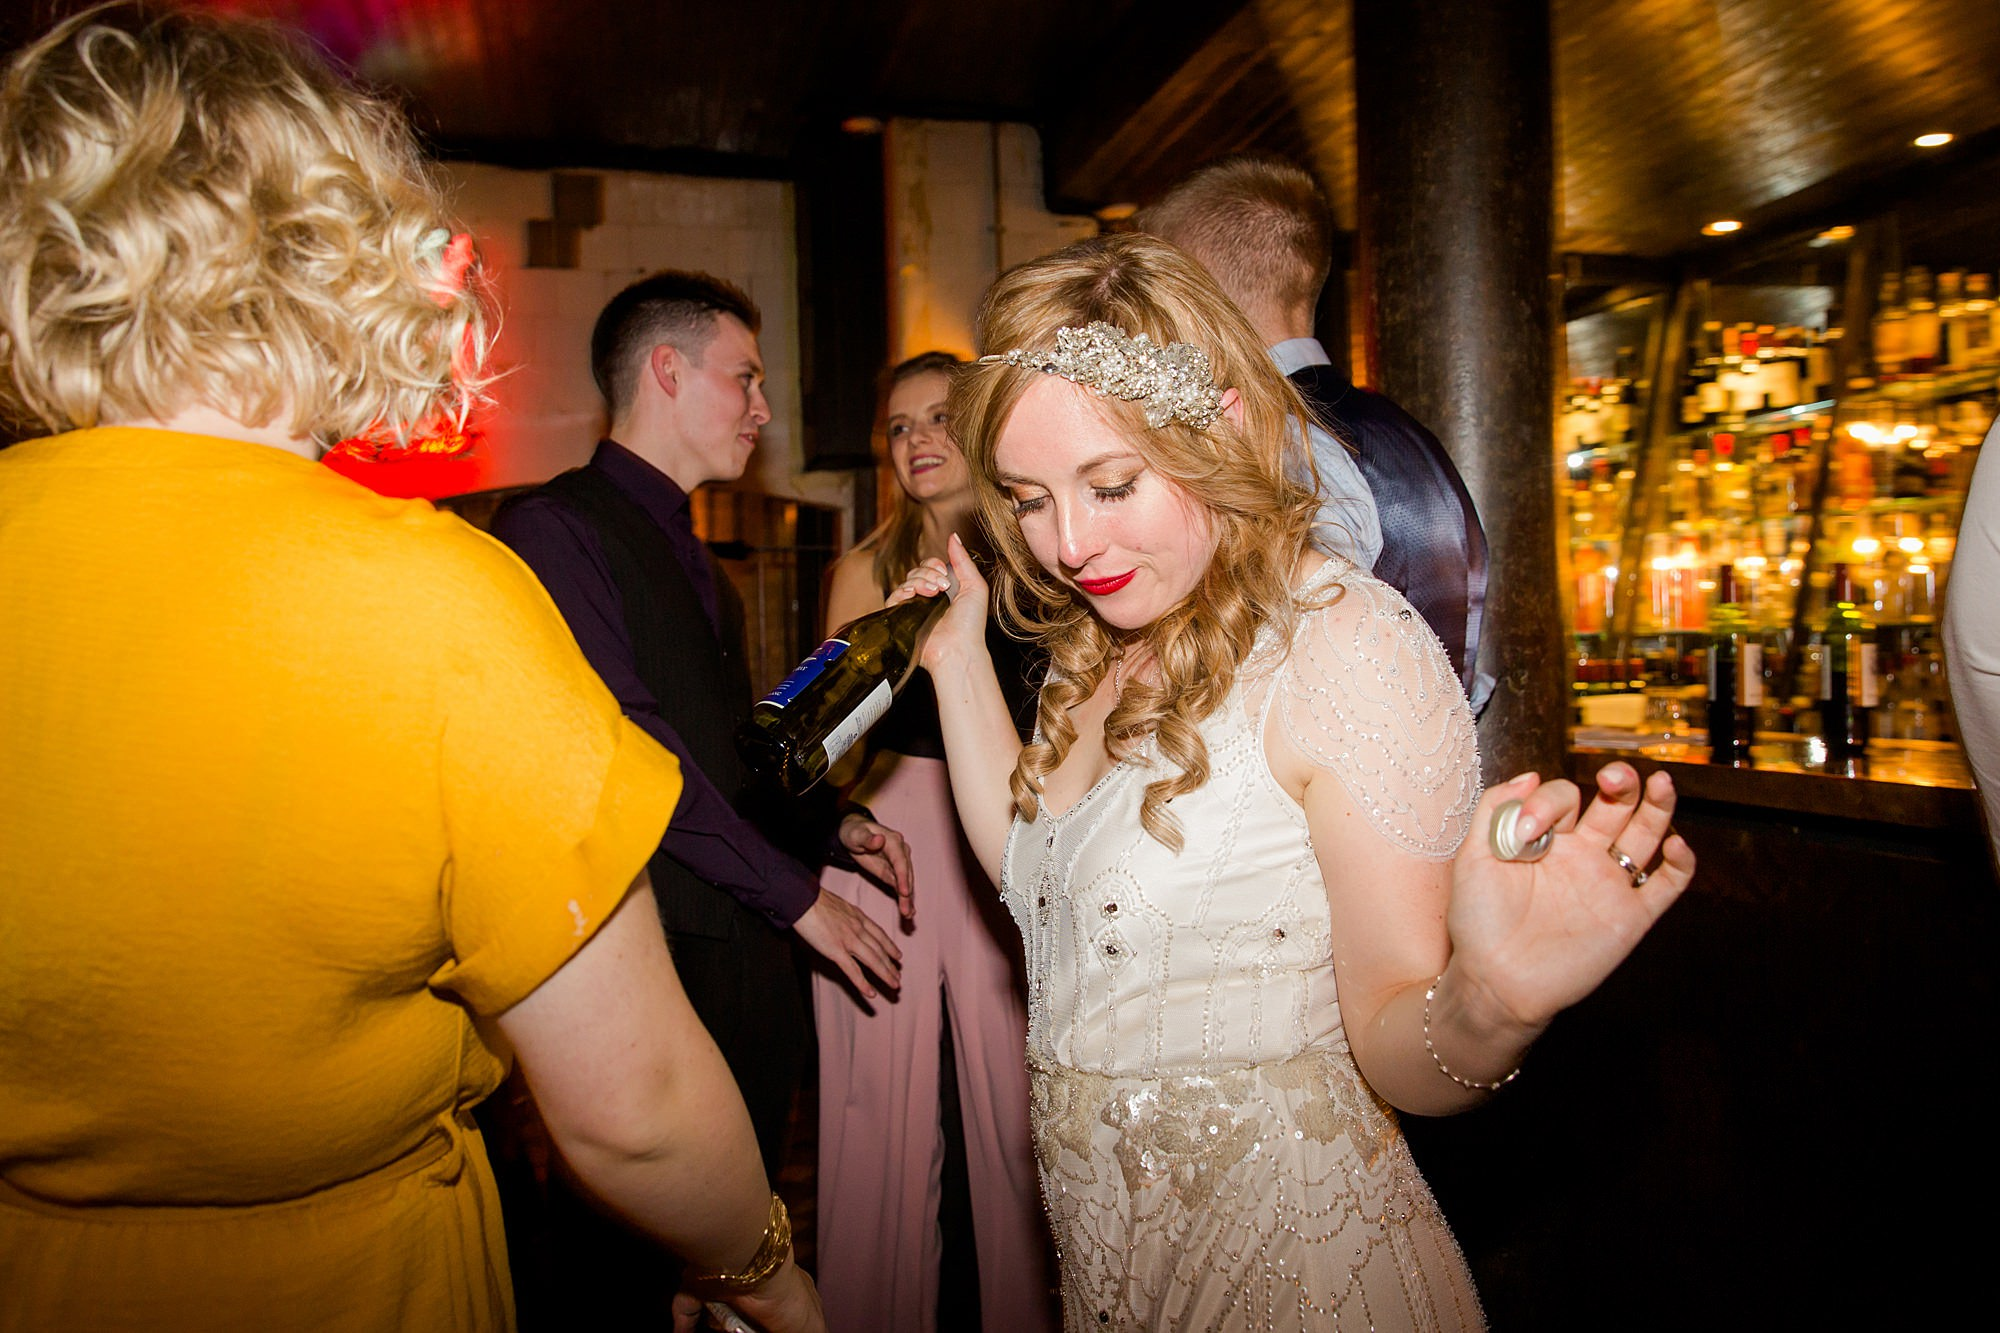 bride on dance floor with champagne bottle